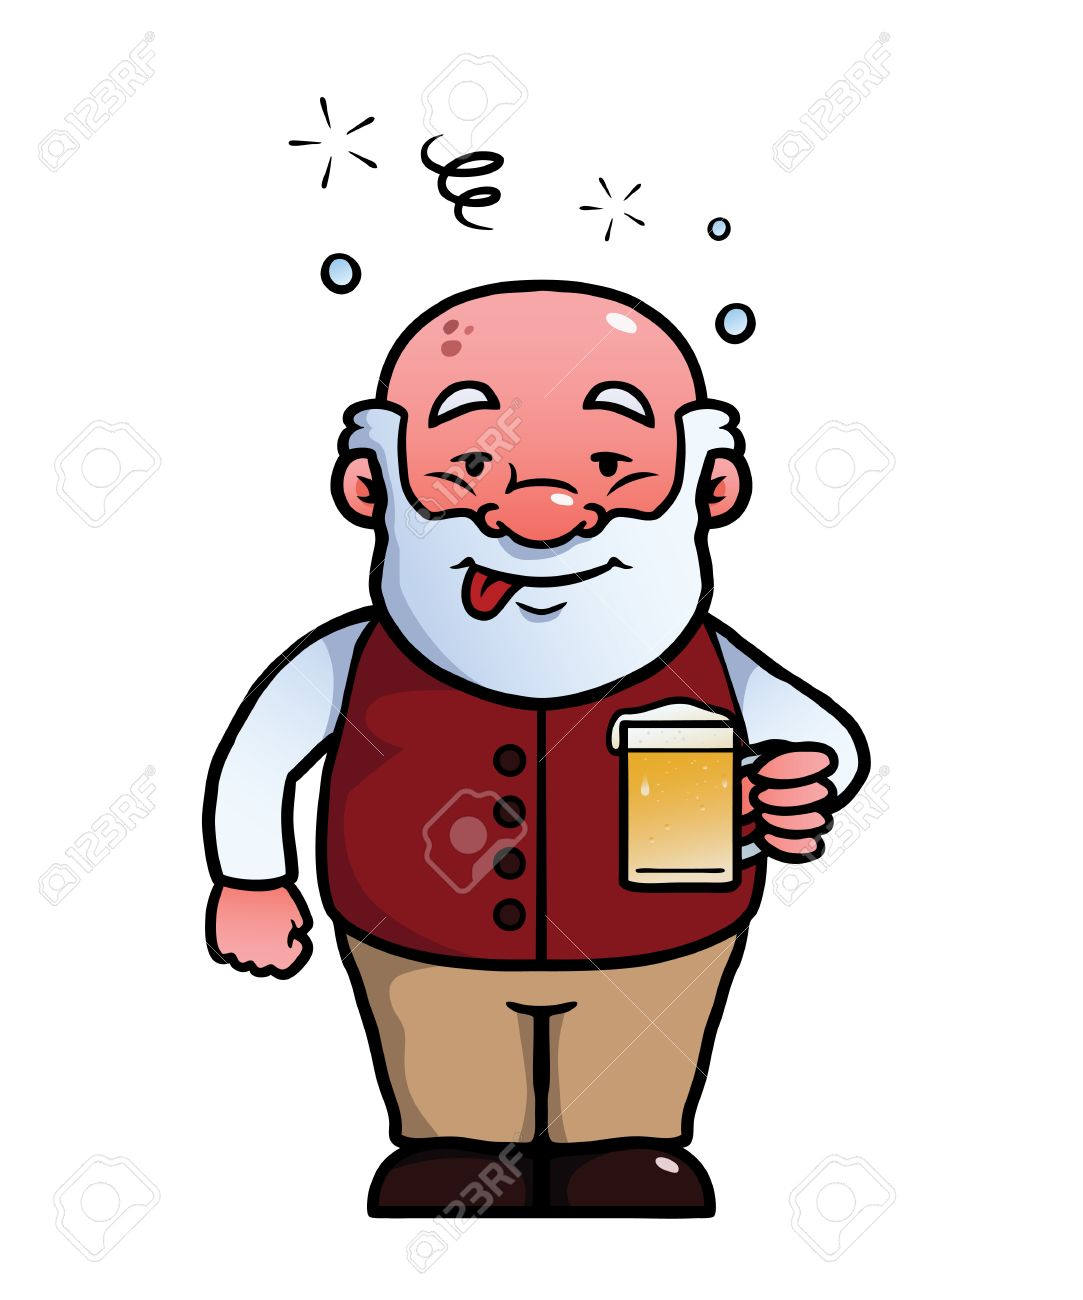 Alter opa clipart image 16,744 Grandfather Cliparts, Stock Vector And Royalty Free ... image